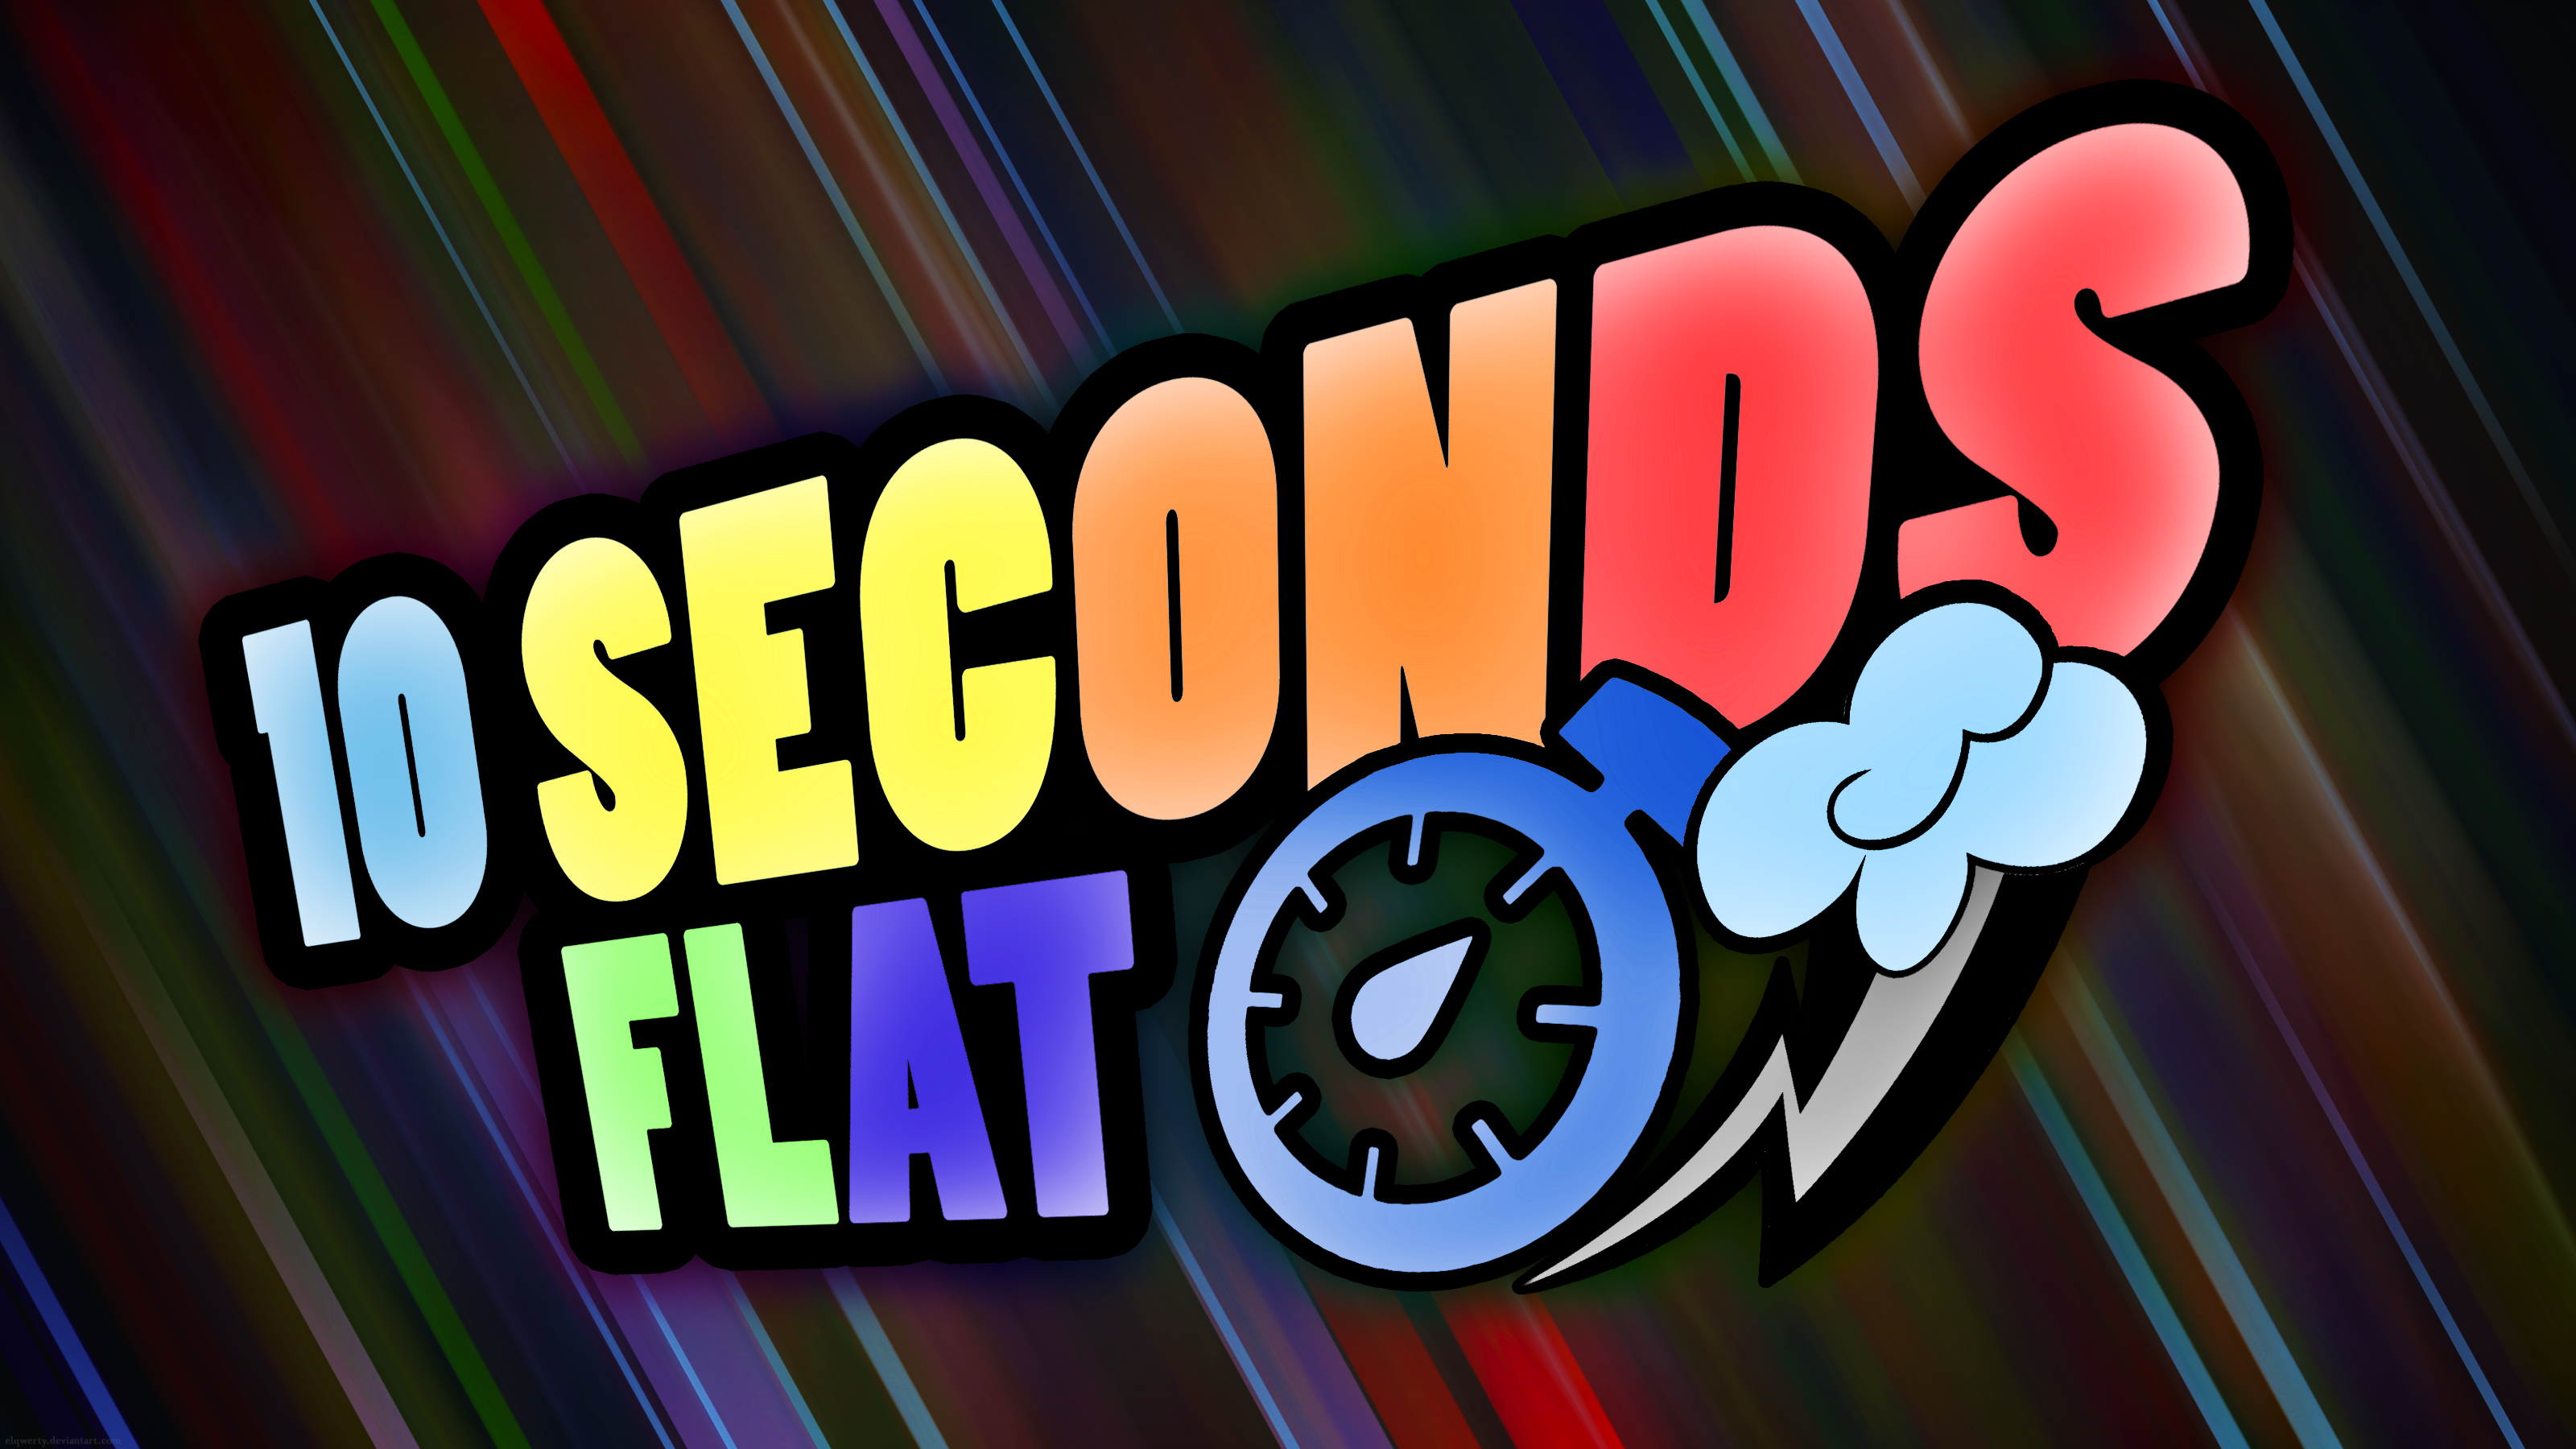 10 seconds flat WP by BlackGryph0n and ElQwerty